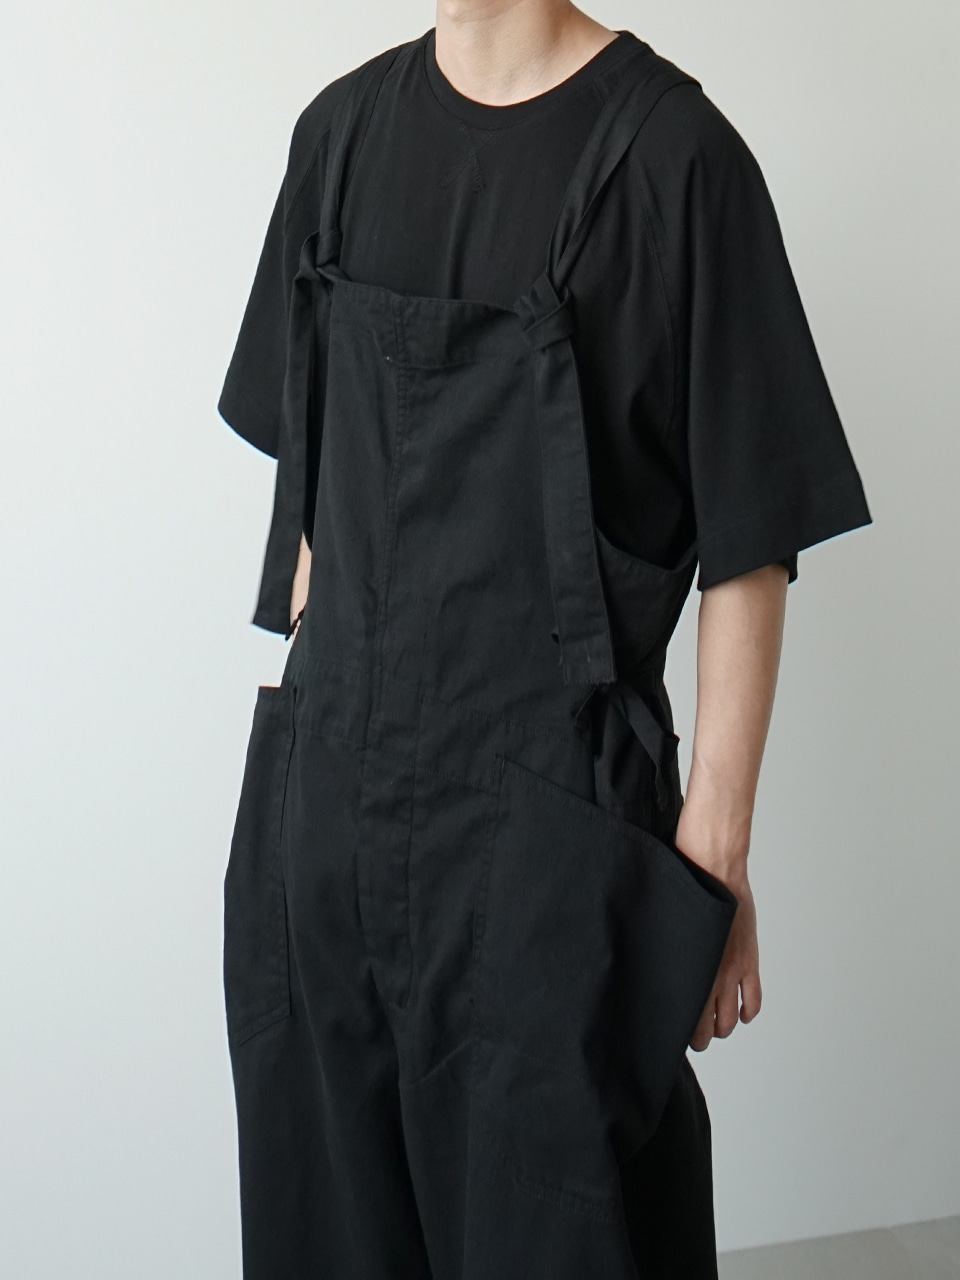 New Light Overalls (2color)